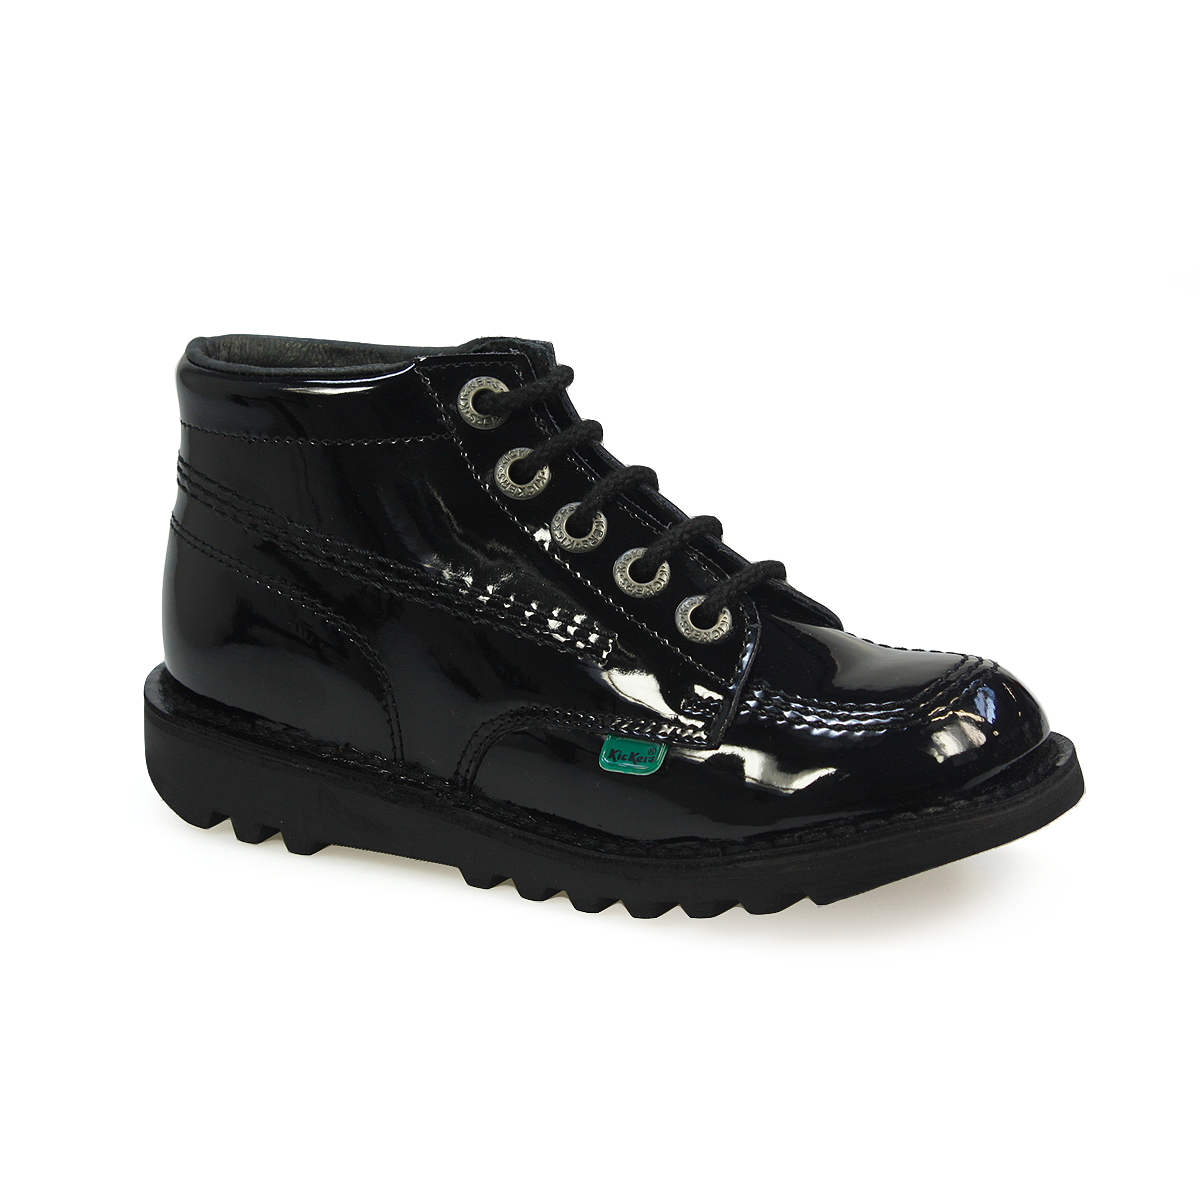 Kickers Kick Junior Black Patent Leather Kids School Boots ...